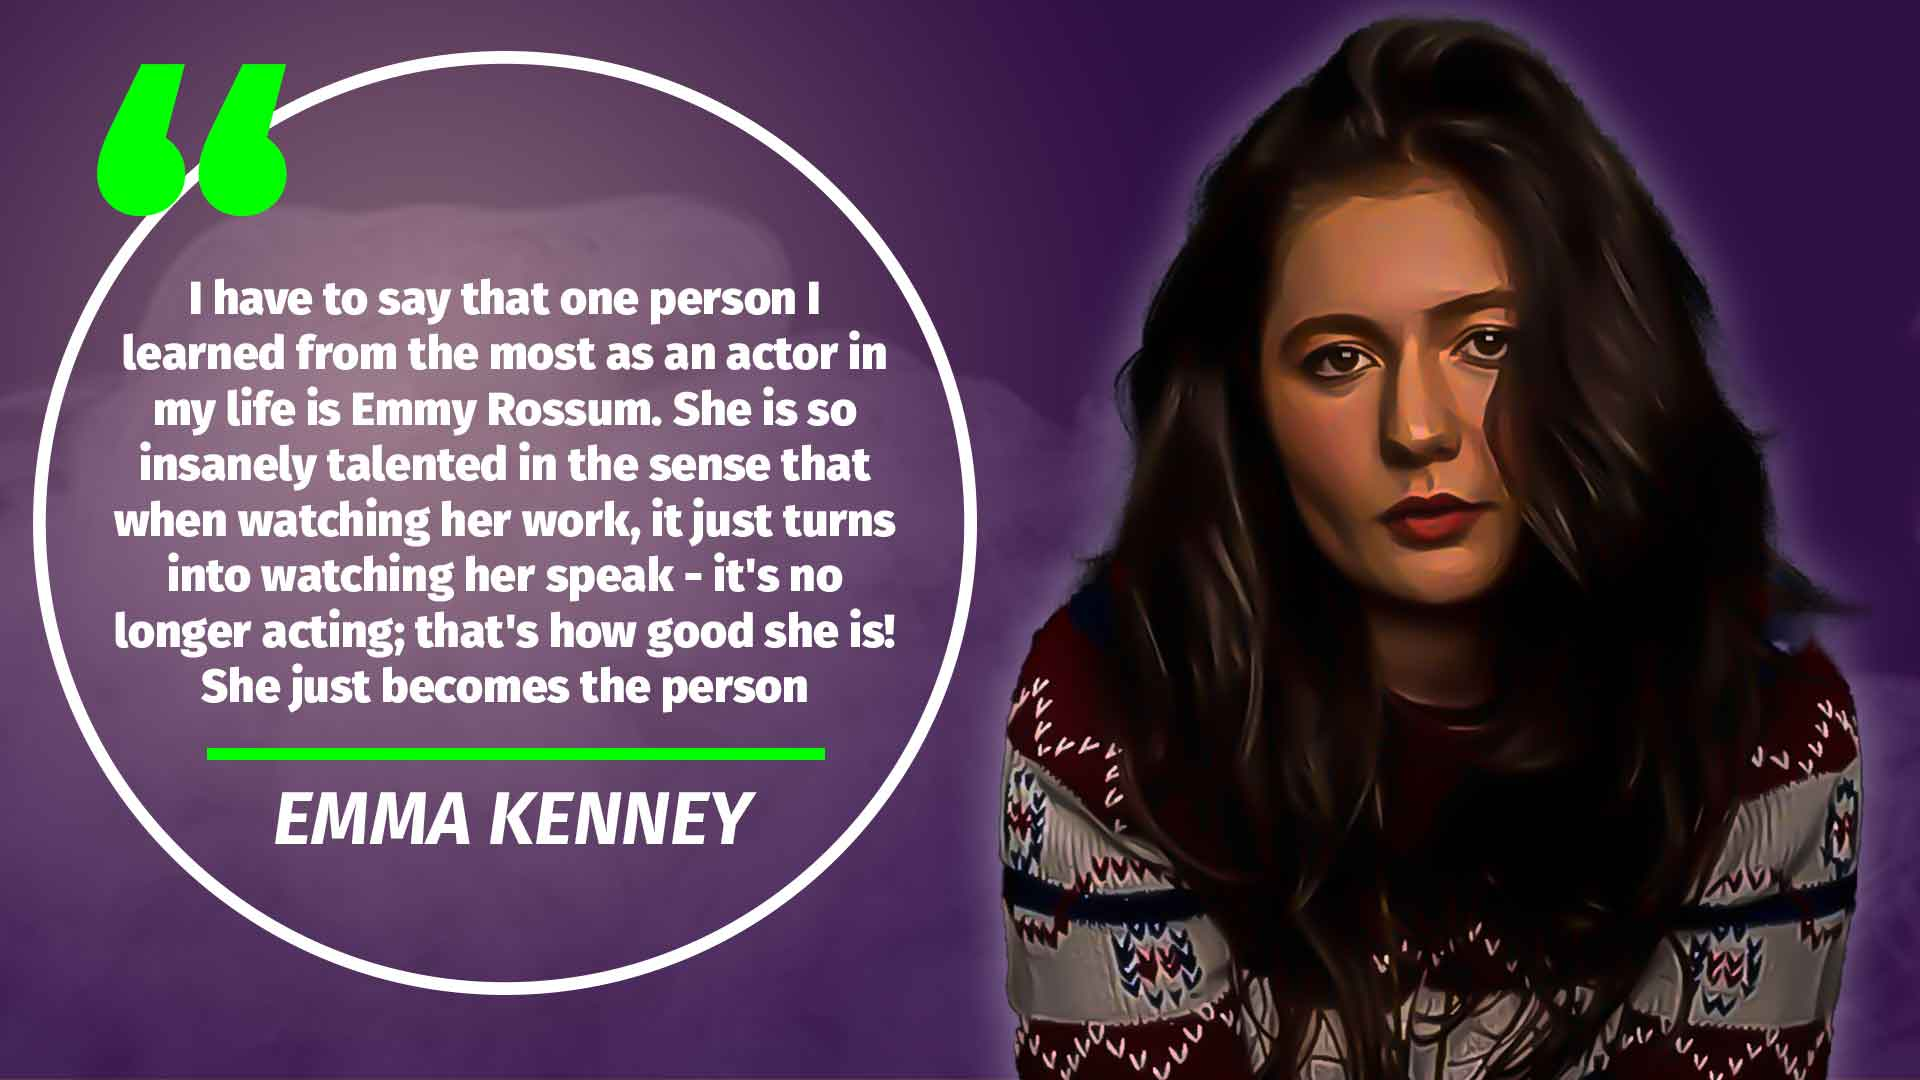 emma kenney QUOTE 2